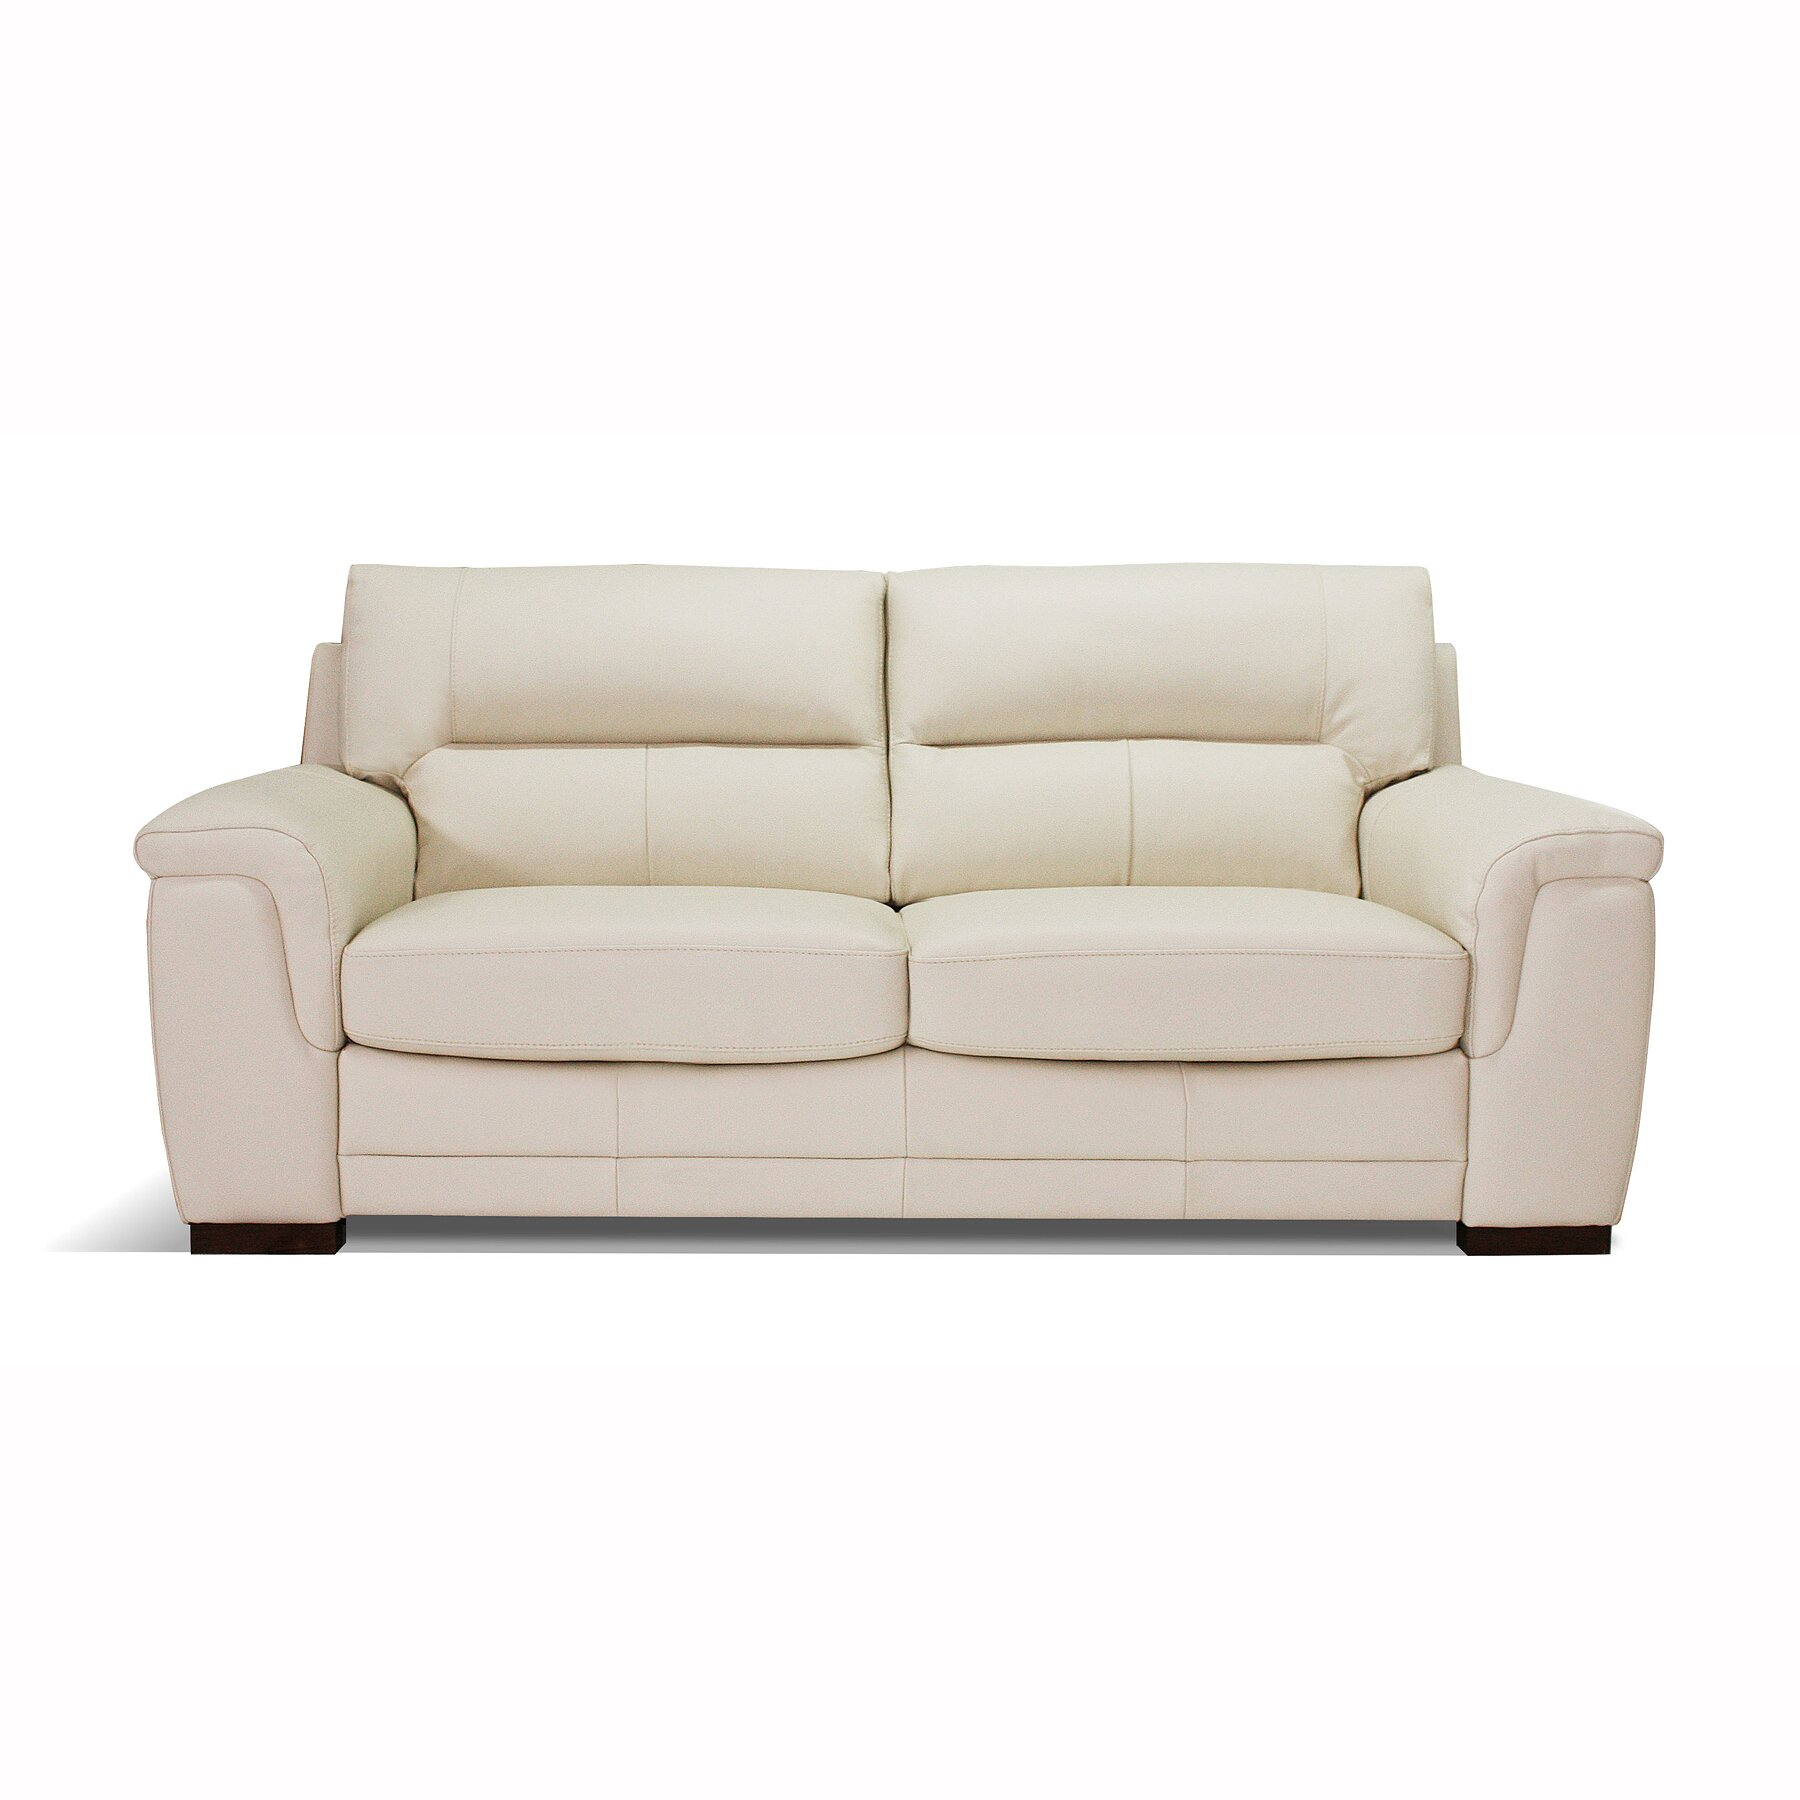 Albany Leather Sofa Albany Sofa Leather Furniture Leather Furniture Albany Sofa By Omnia